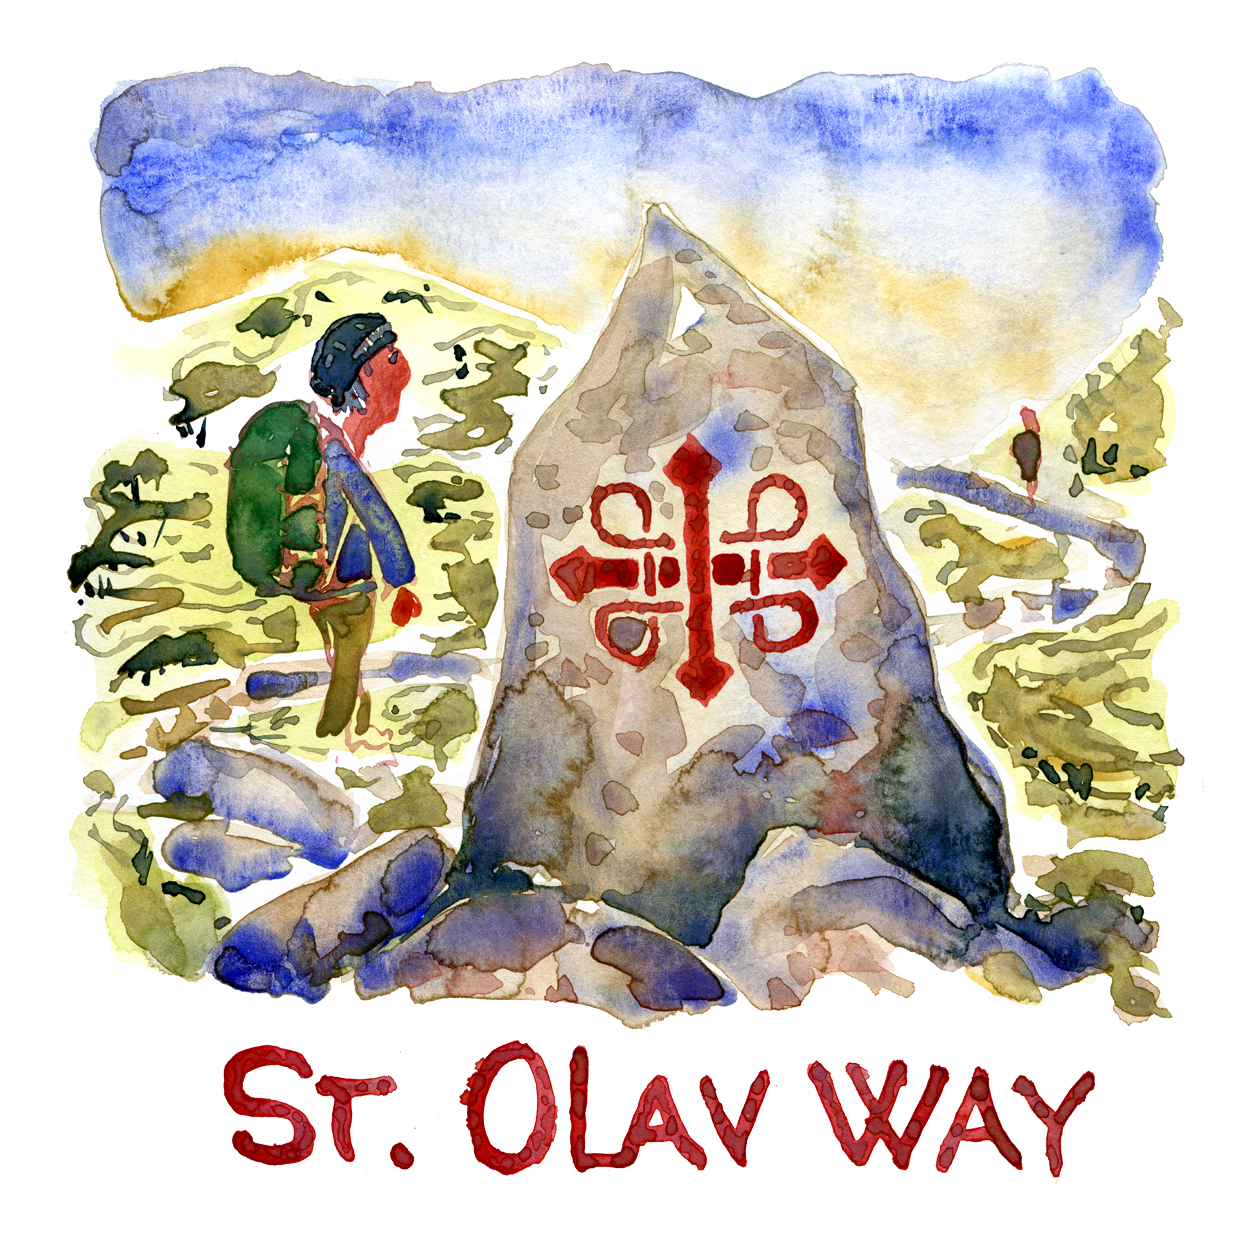 Watercolor of hiker walking along the St. Olav Way in Norway, a stone showing the trail mark beside him